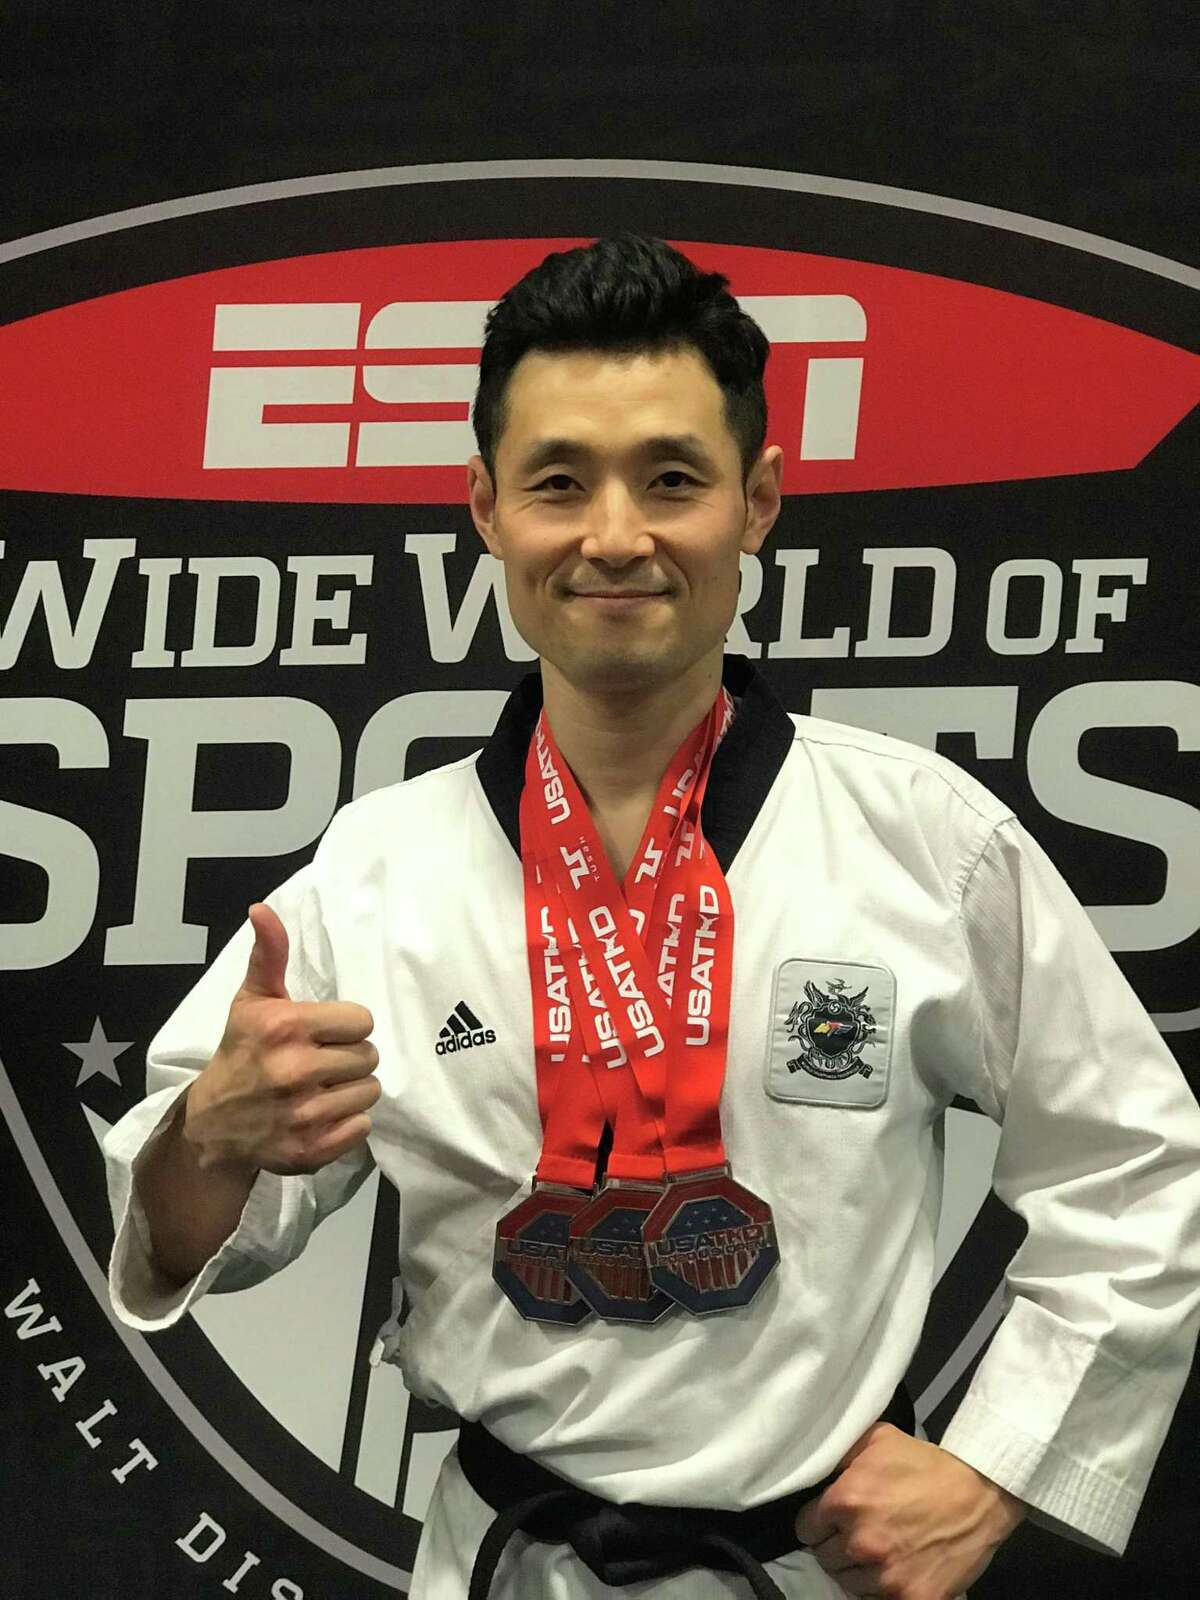 Master Seongho Hong of Master Hong's Olympic Taekwondo Academy in New Milford recently earned three medals at the recent U.S. Open Taekwondo Championships.